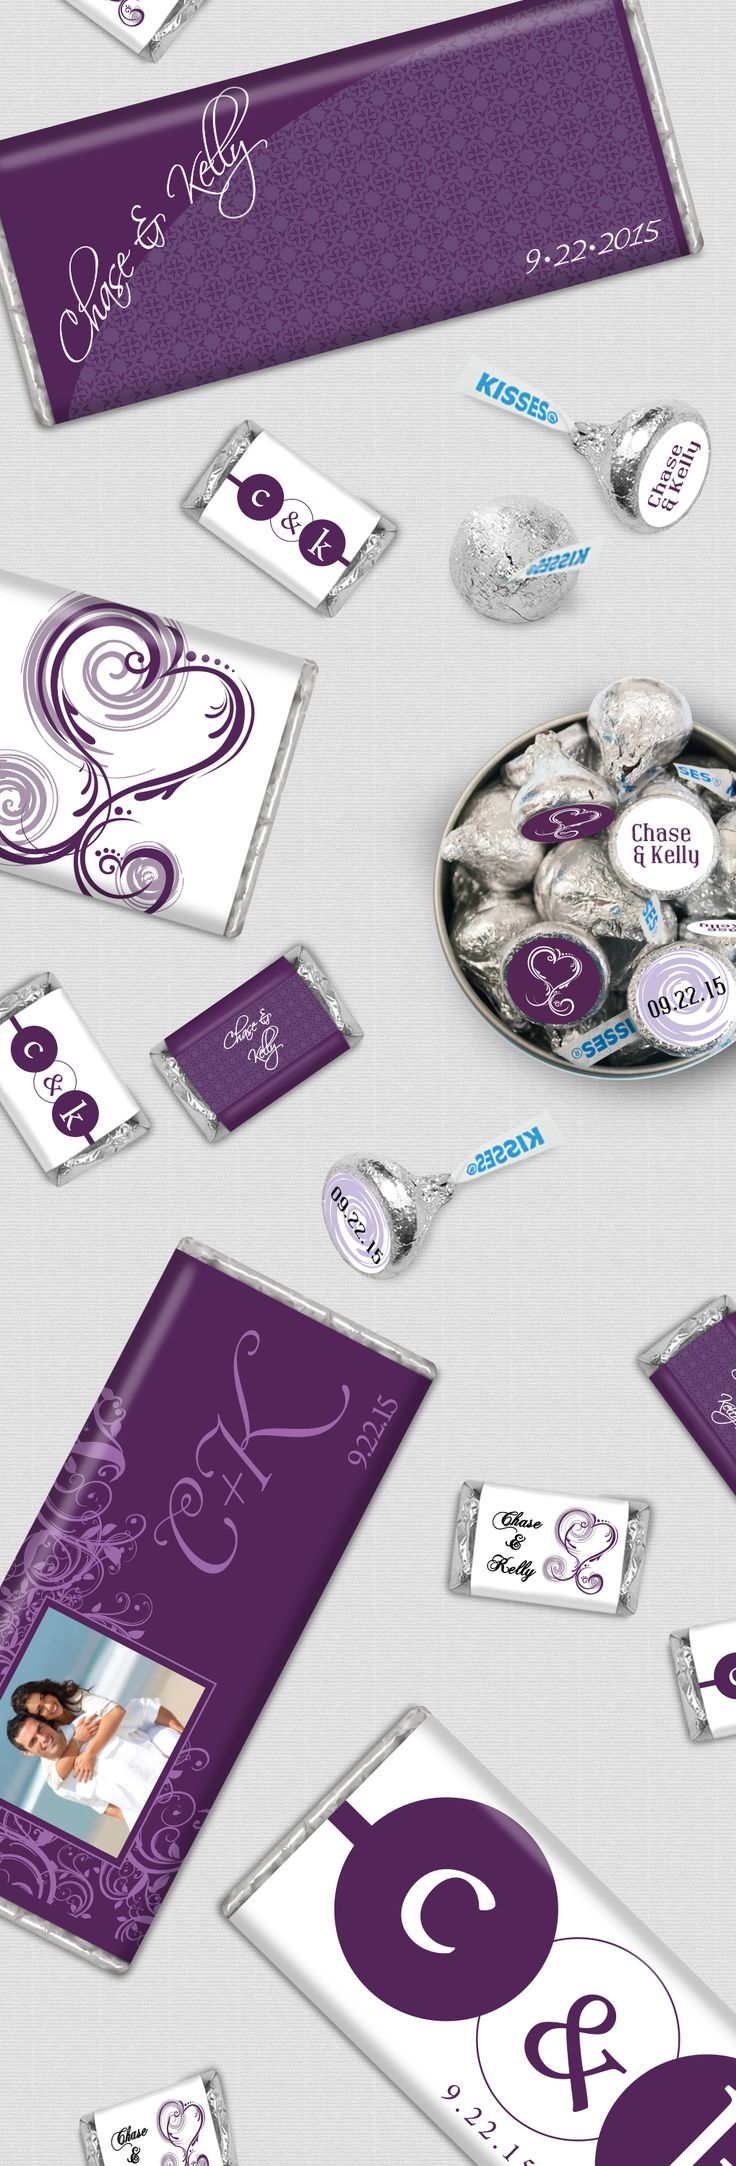 Eggplant Wedding Favor Ideas for Candy Buffet - Personalized Chocolate Bars and Candy Stickers in Purple + White + Silver